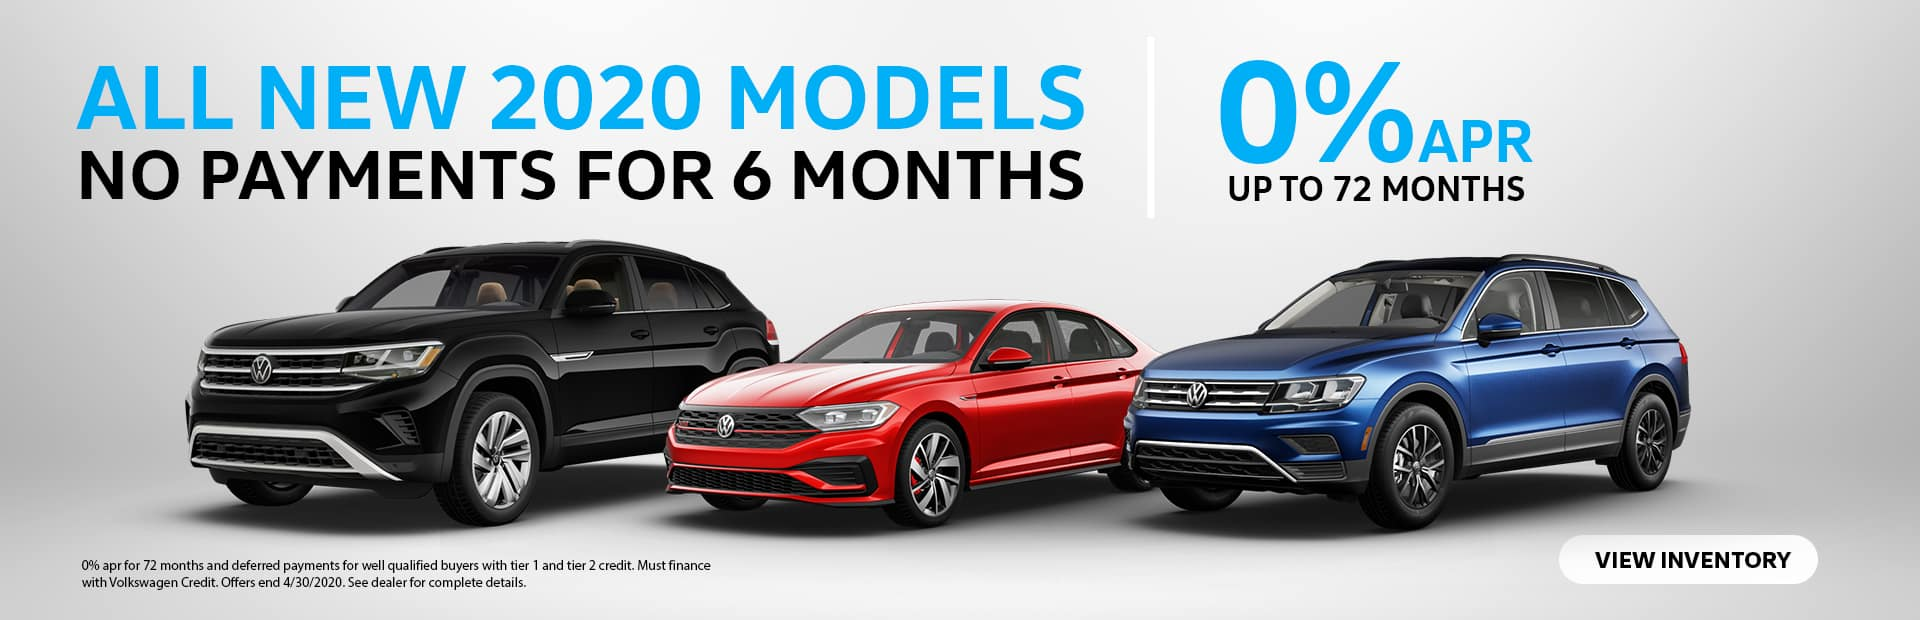 Volkswagen 0% APR Tier 1 and 2 up to 72 Months